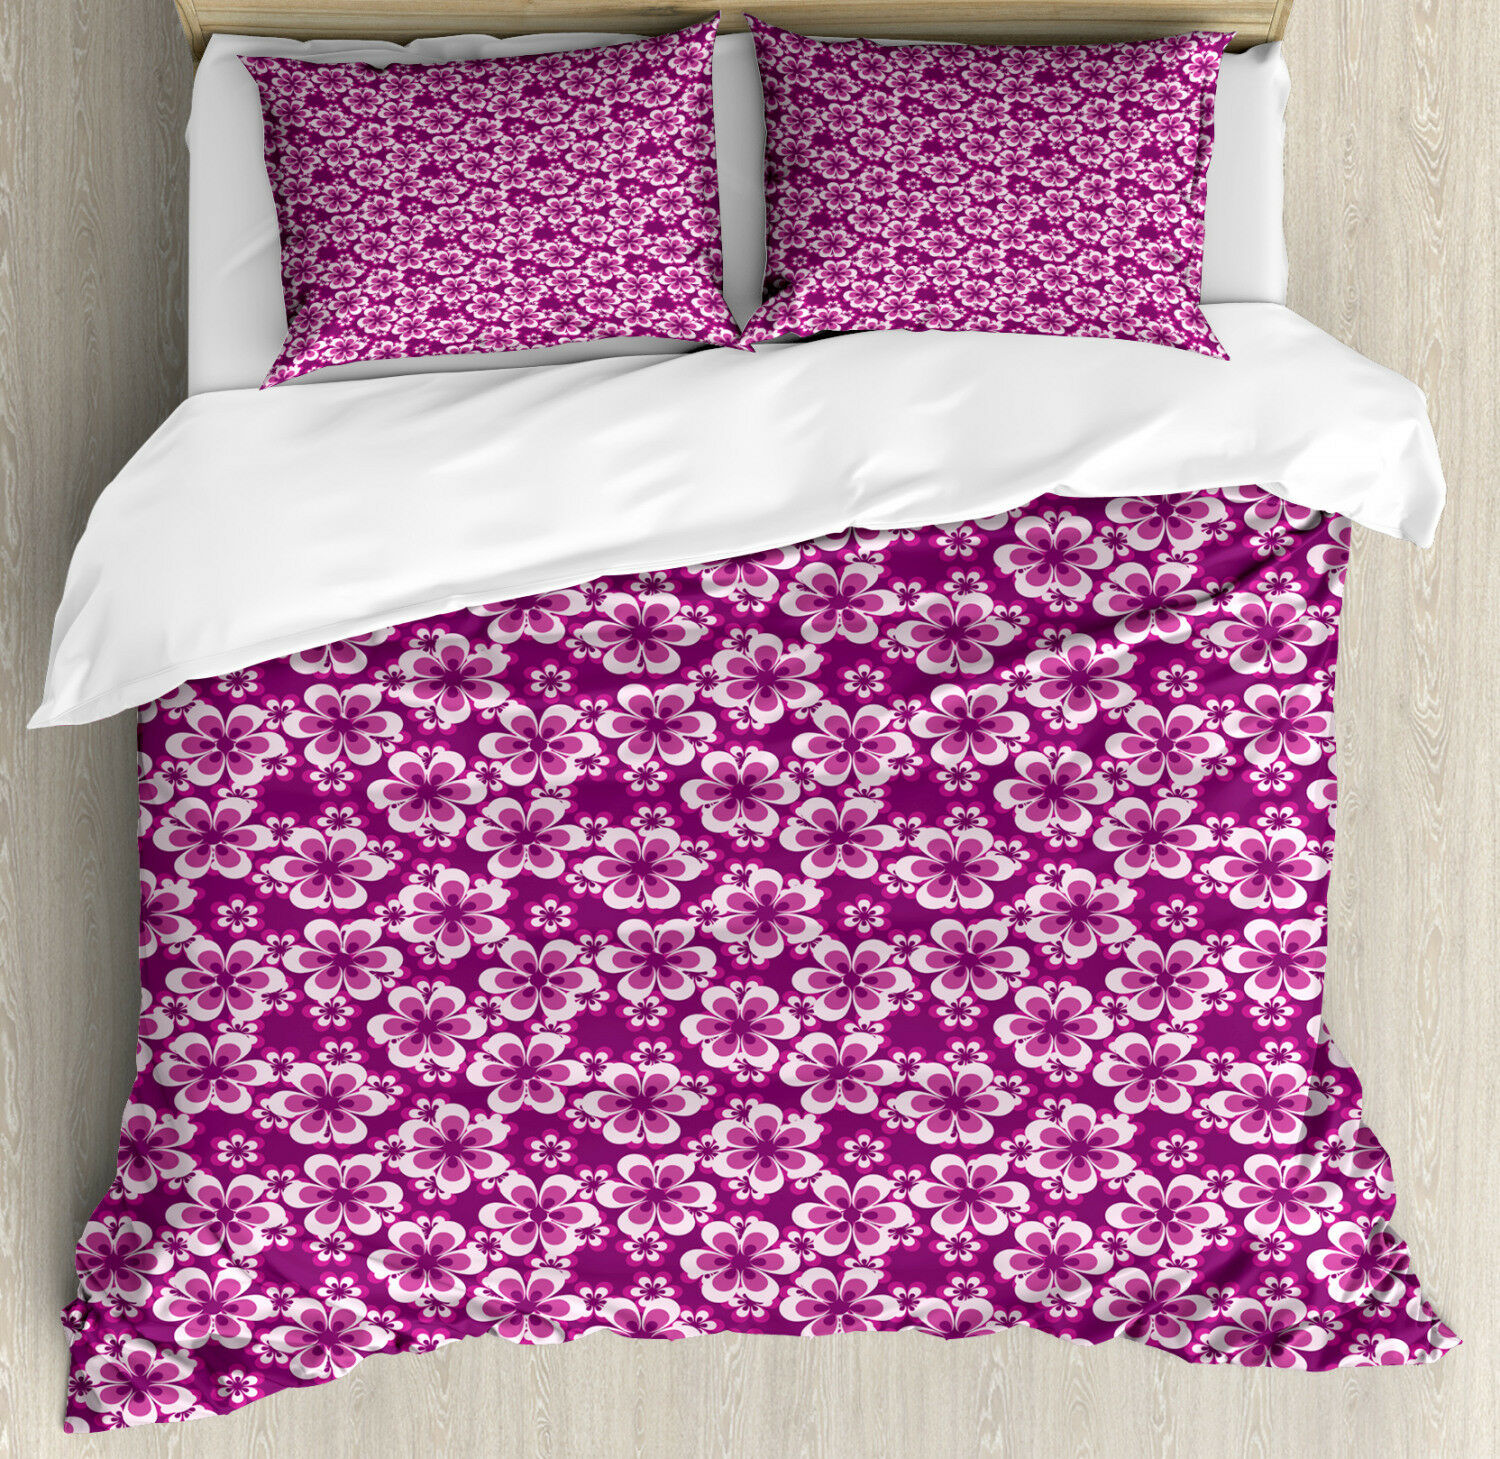 Viola Duvet Cover Set with Pillow Shams Botany Themed Petals Print